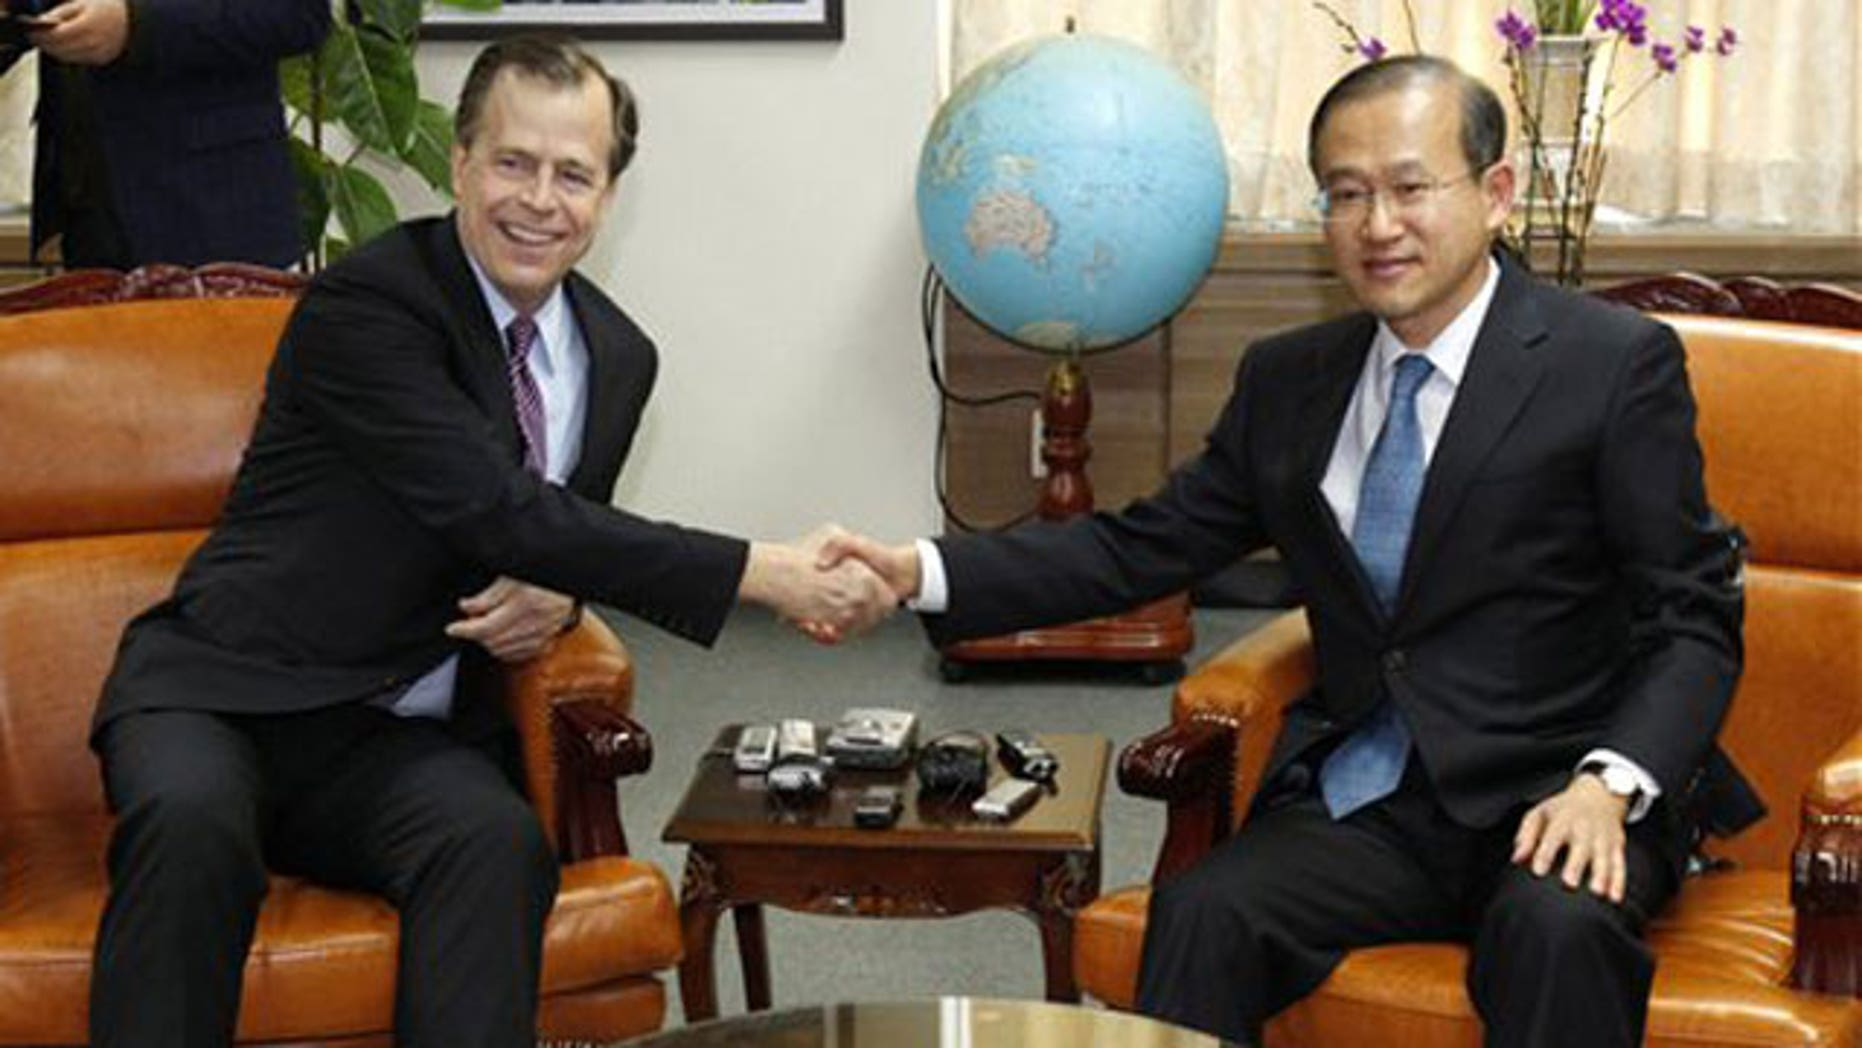 Feb. 25, 2012: U.S. special representative on North Korea policy Glyn Davies, left, shakes hands with South Korea's nuclear envoy Lim Sung-nam during their meeting at the Foreign Ministry in Seoul, South Korea.